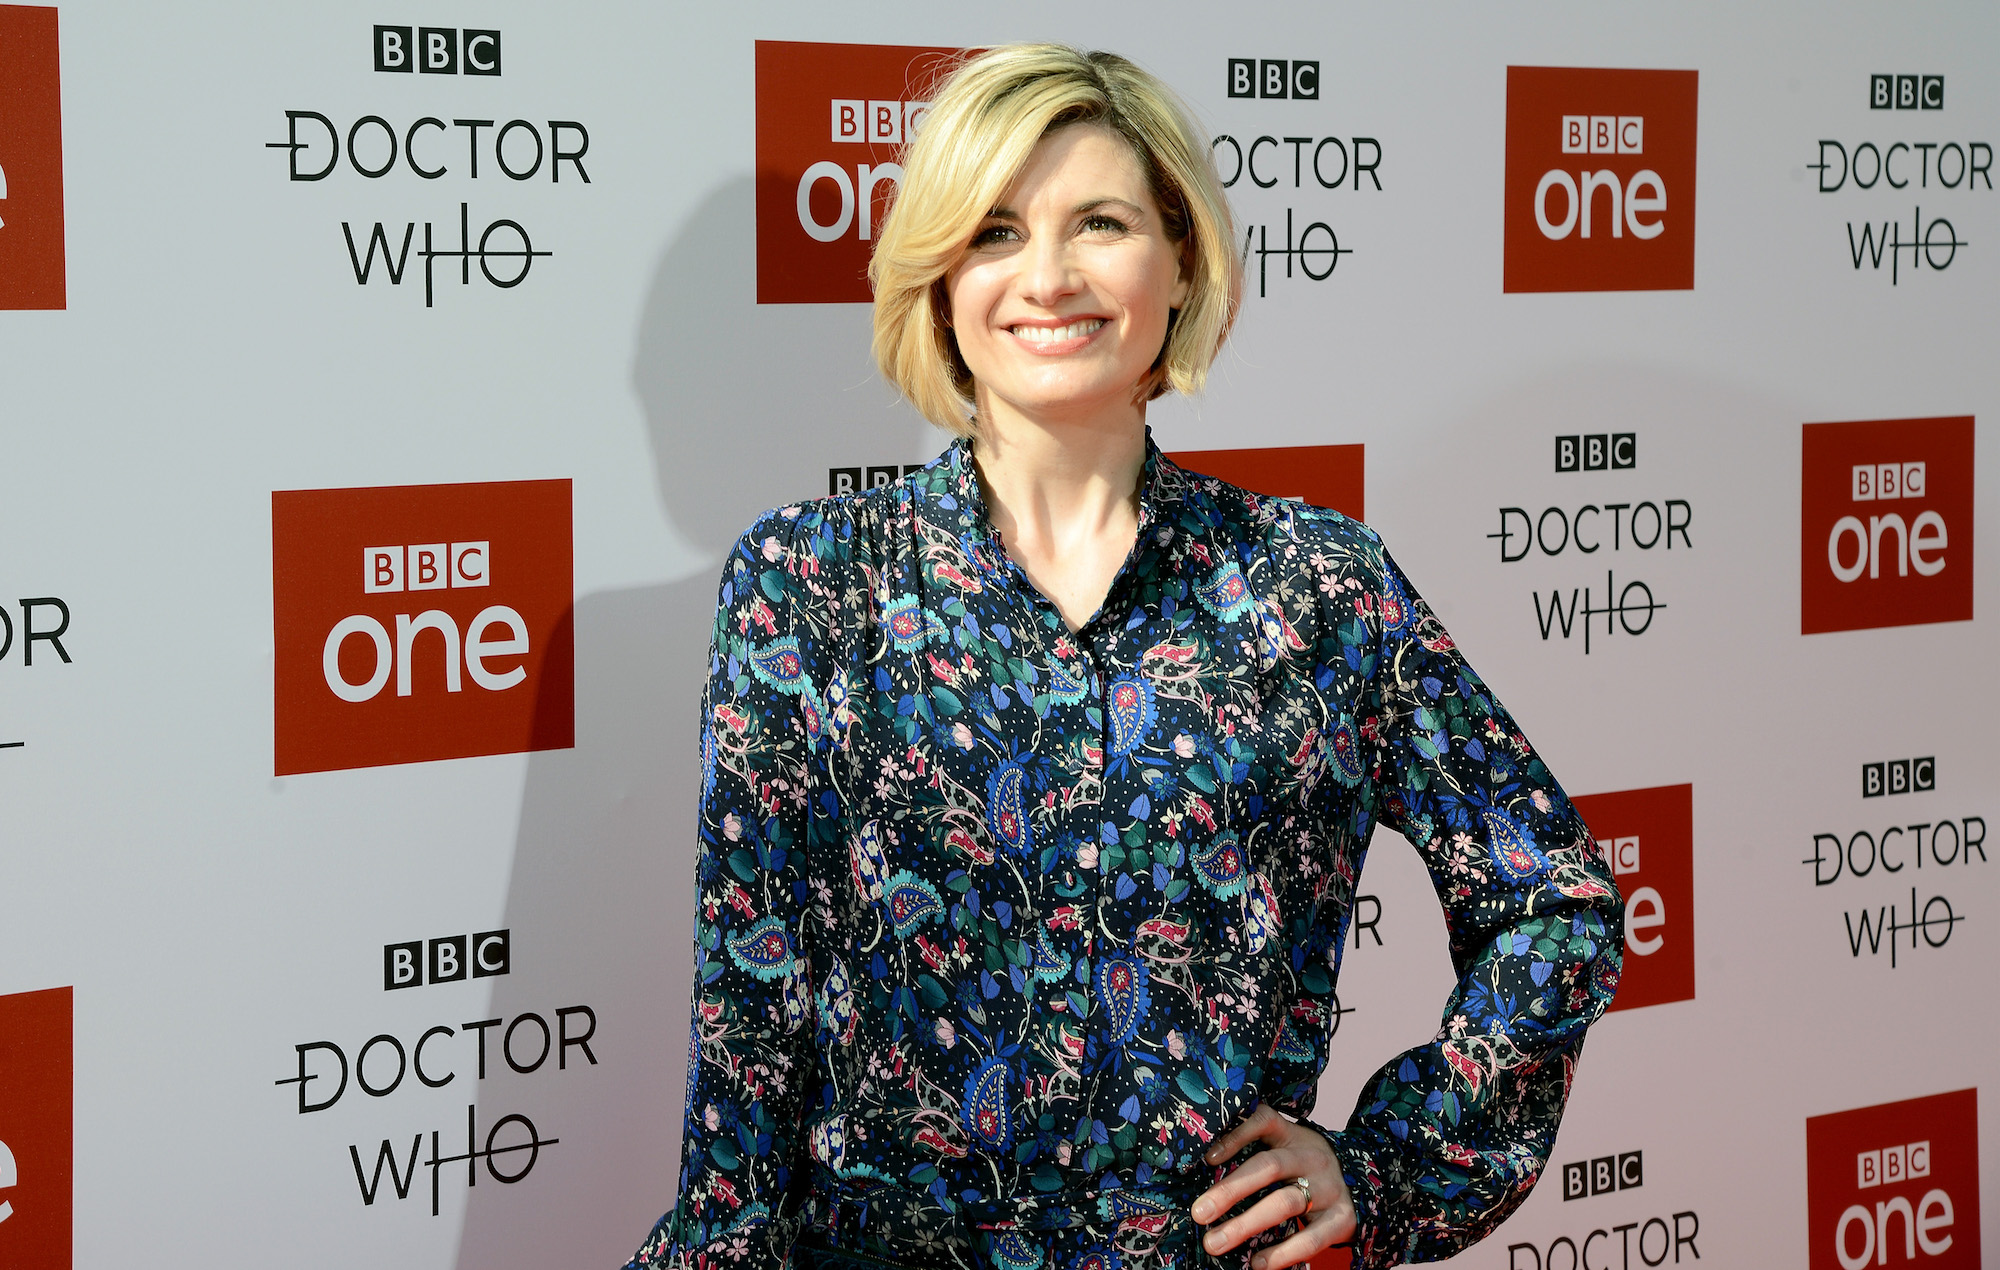 NME Festival blog: Jodie Whittaker reveals her reaction to being told she was the new 'Doctor Who'